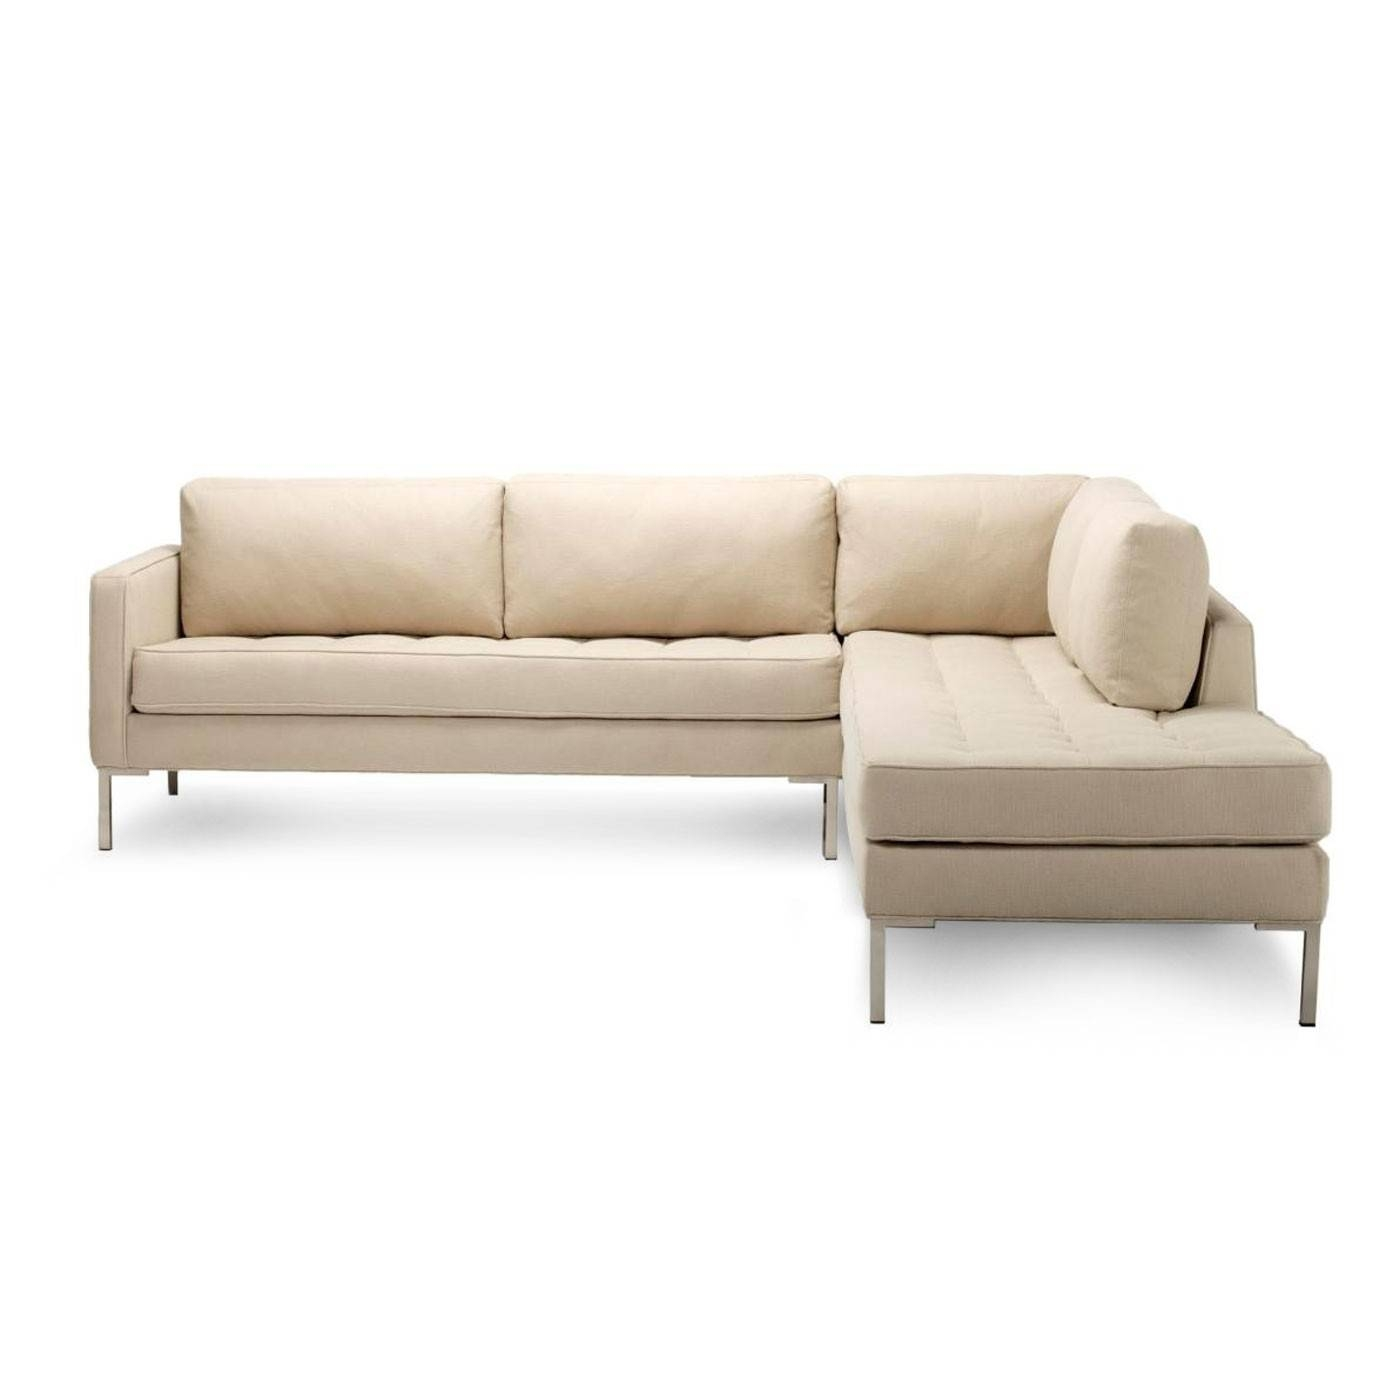 Small Sectional Sofa With Recliner | Homefurniture pertaining to Mini Sectional Sofas (Image 24 of 30)